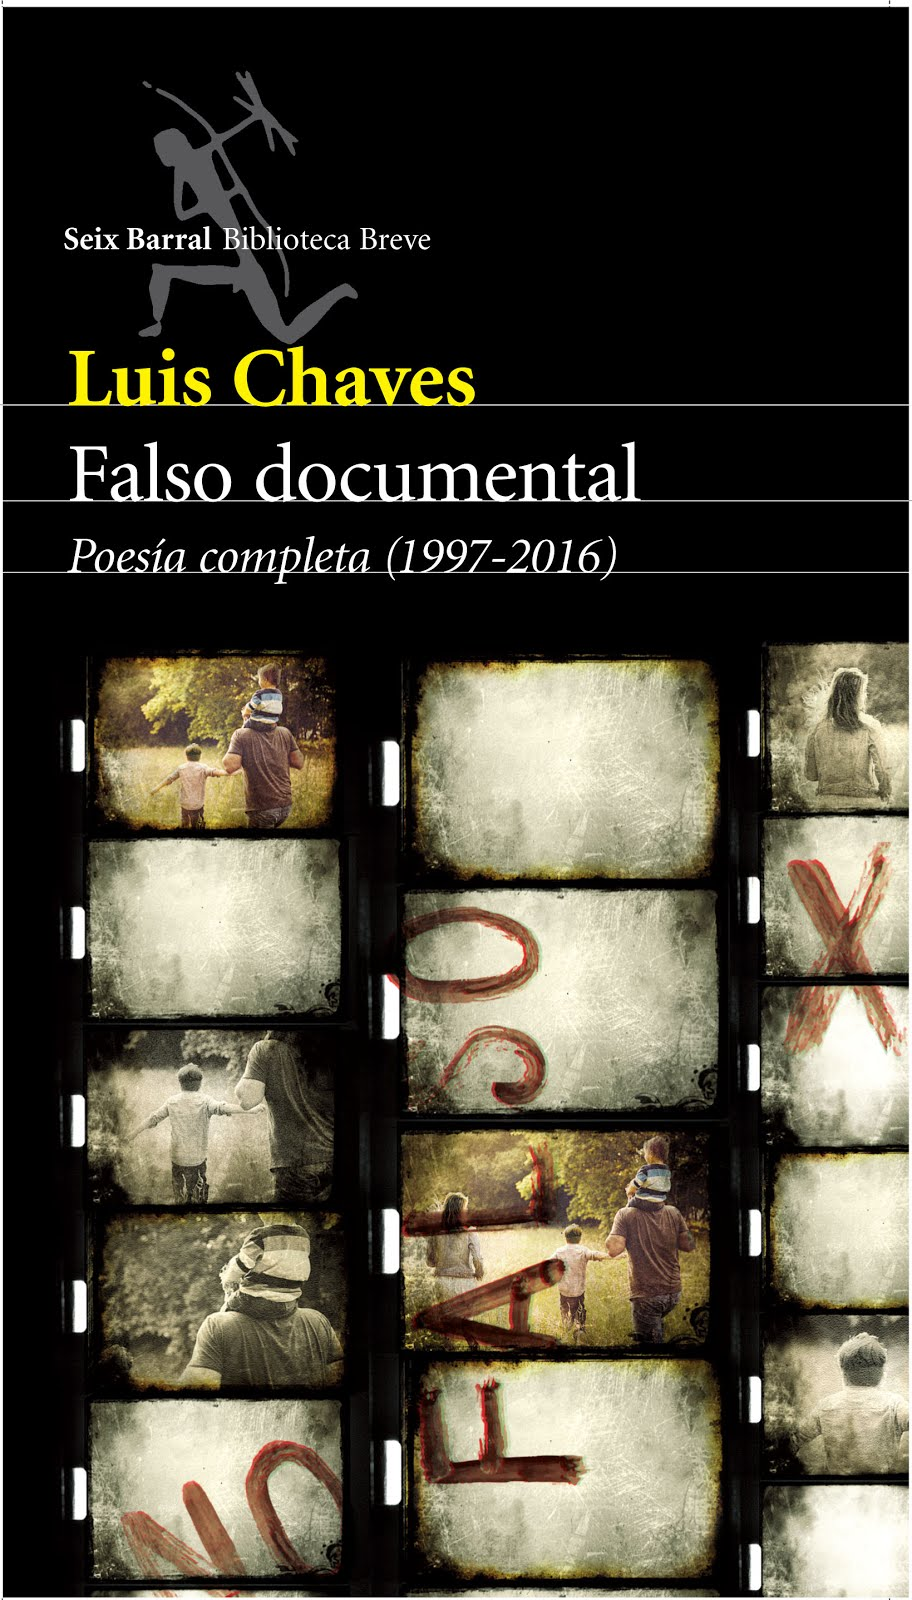 Falso documental Chaves Seix Barral